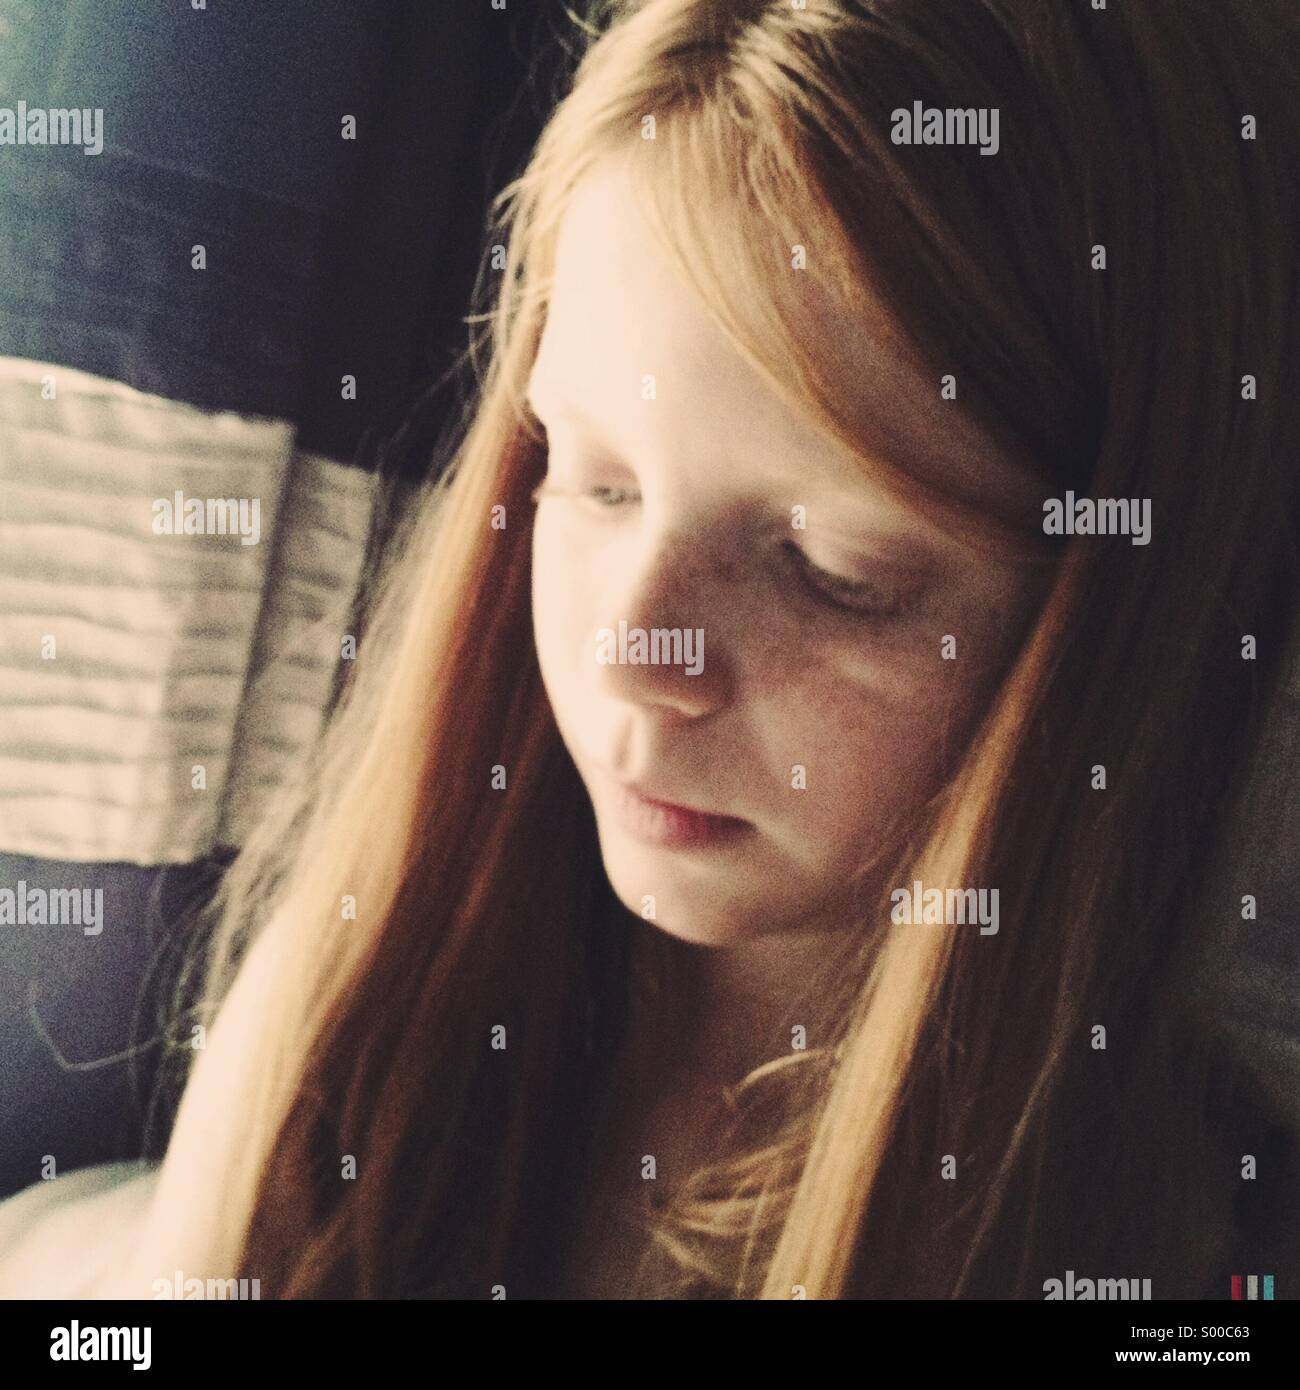 A Young Girl Looks Down While Sunlight Lights Up One Side